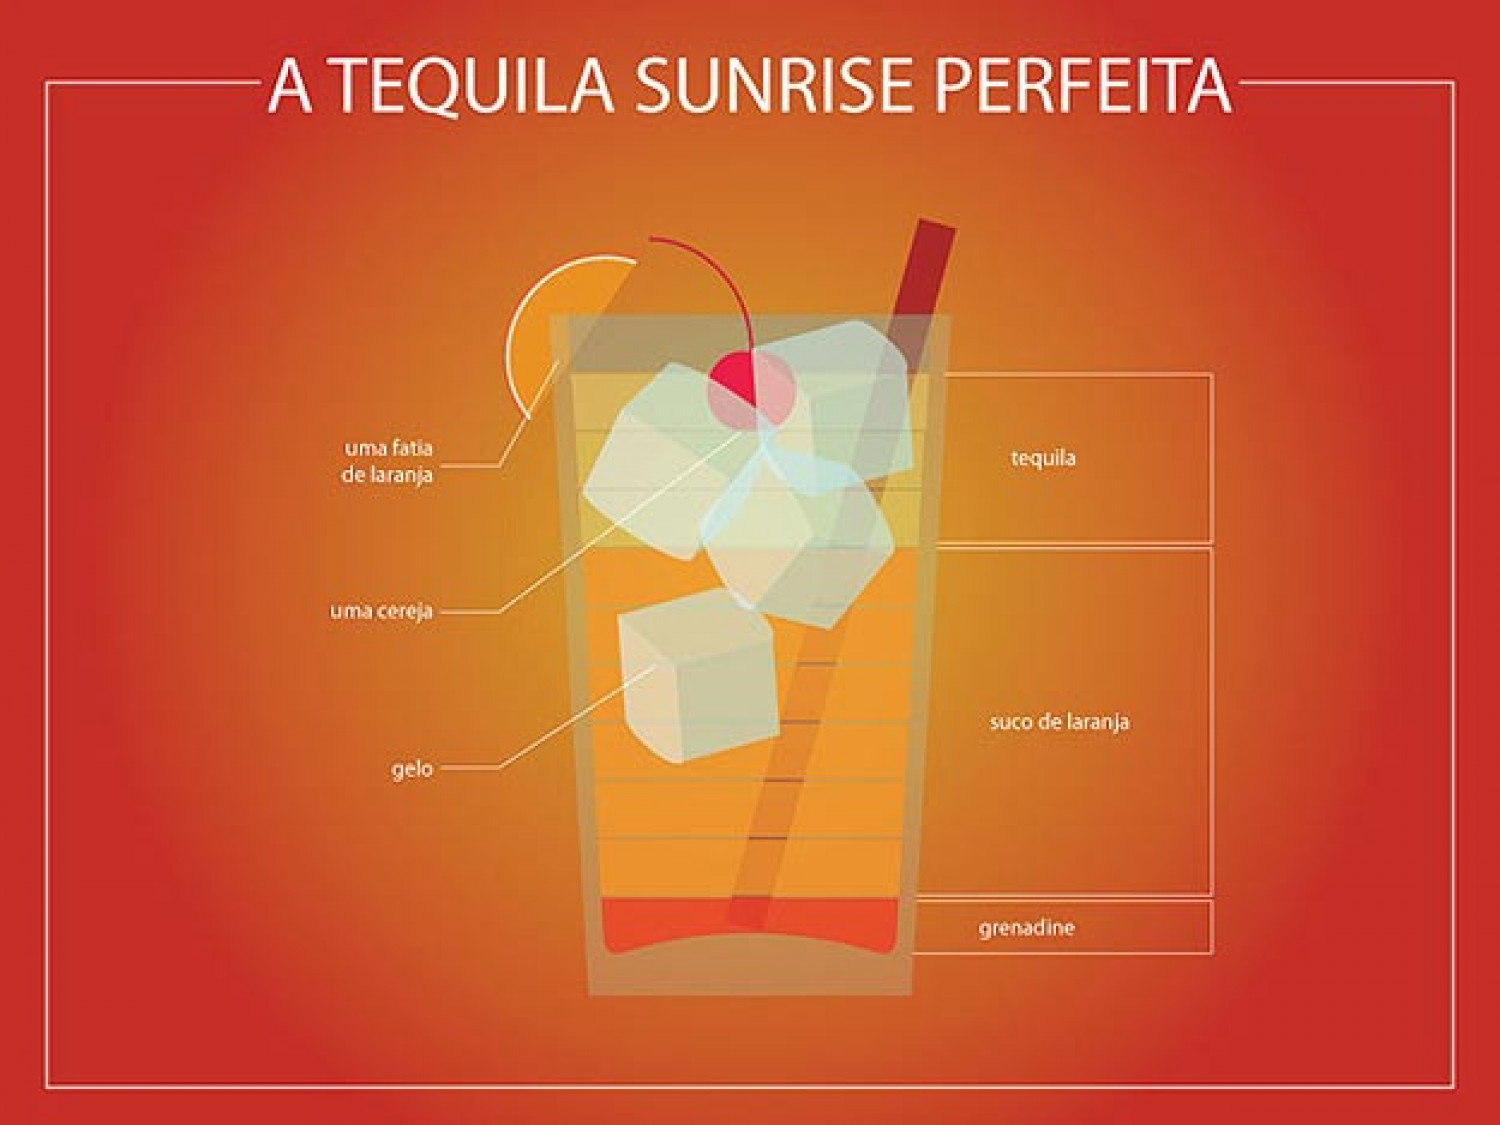 The Perfect Tequila Sunrise Infographic